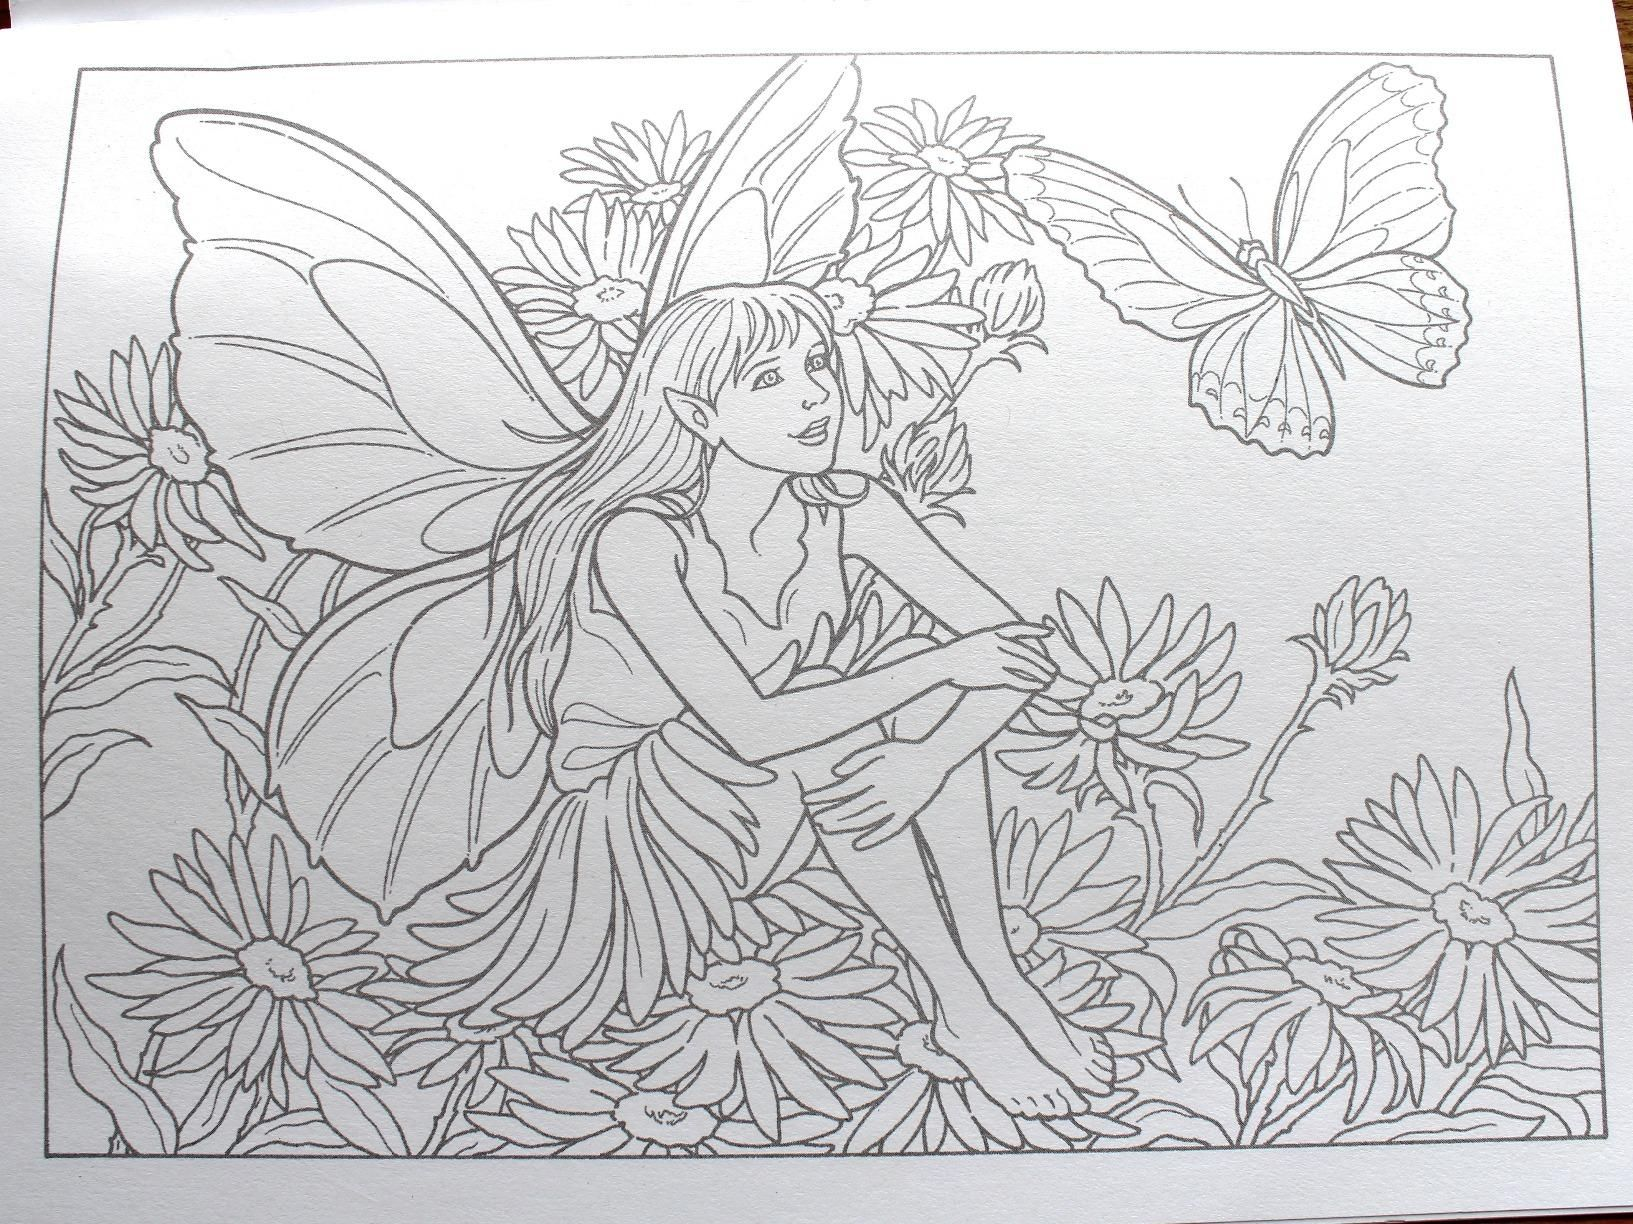 Fairies To Paint Or Color Dover Art Coloring Book Darcy May 9780486465449 Amazon Com Books Art Coloring Books Painting